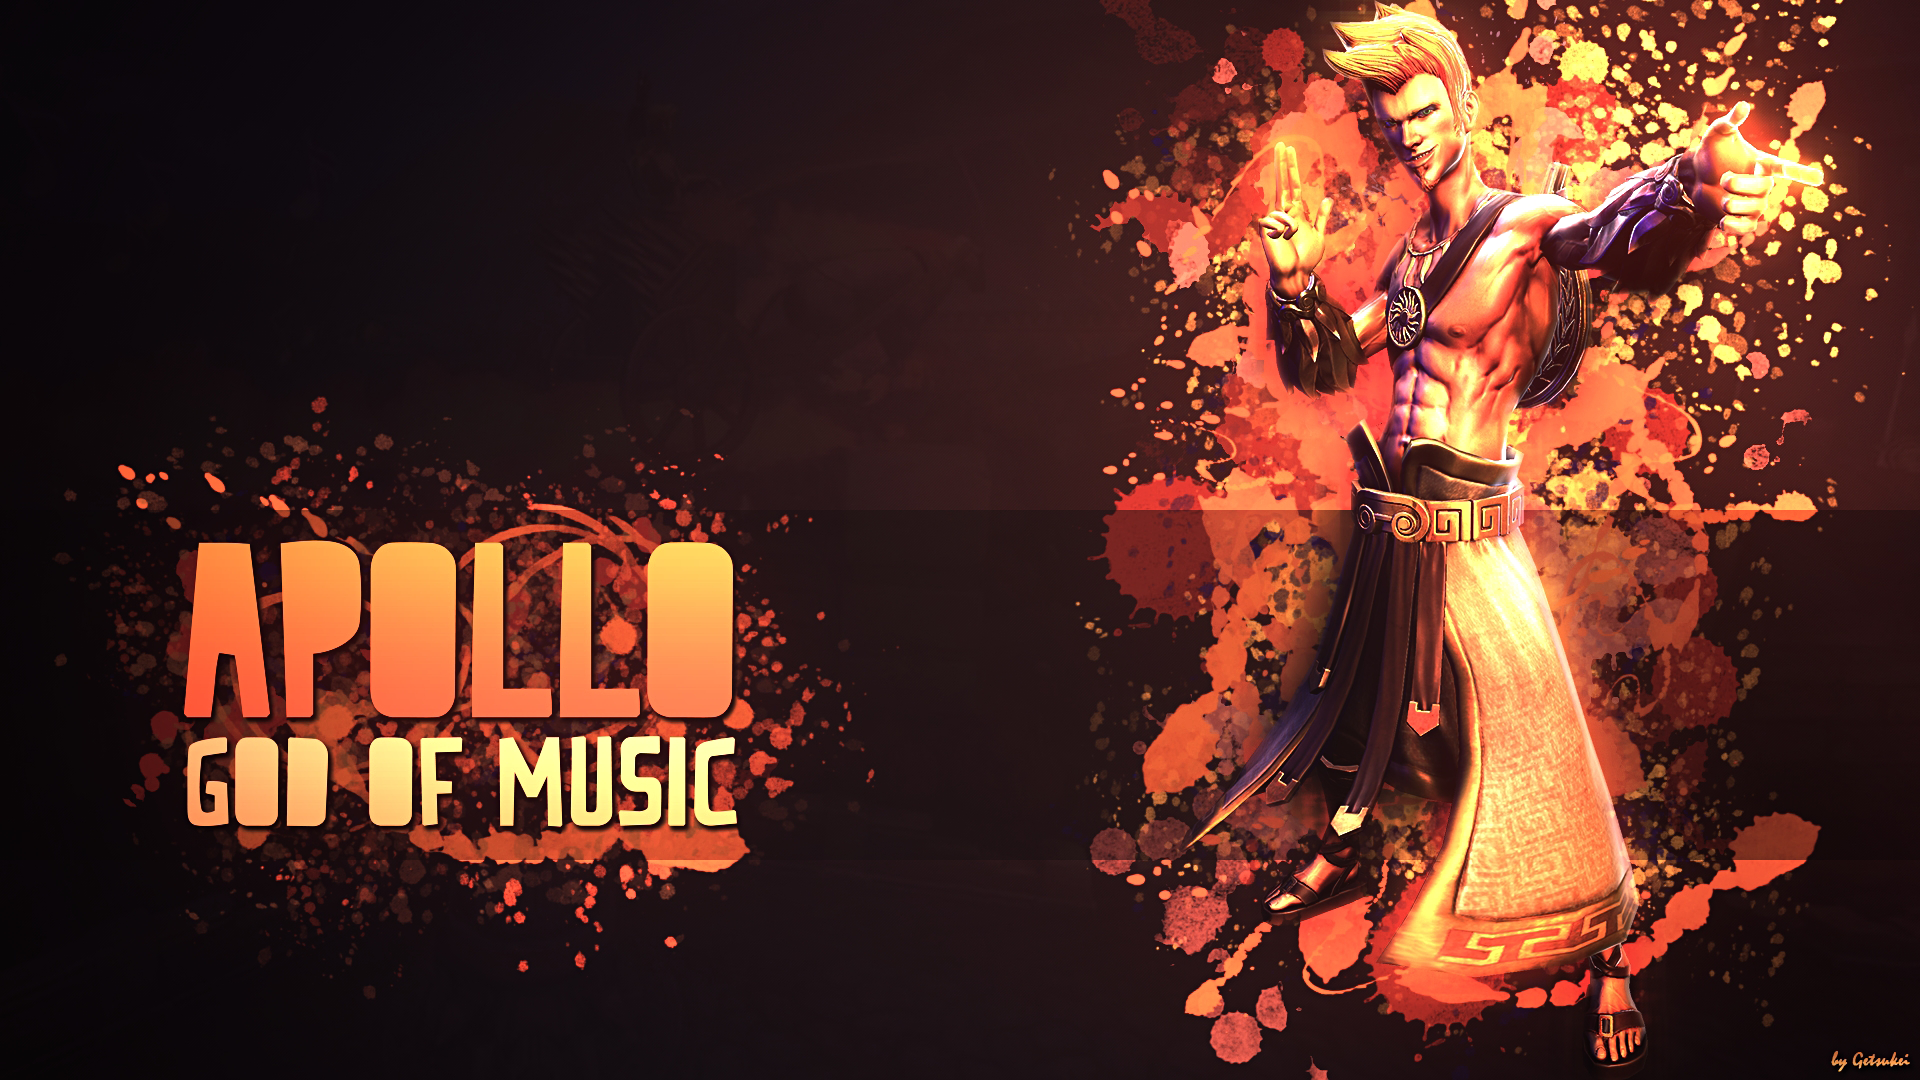 Apollo God Of Music Wallpaper Hd By Getsukeii On Deviantart